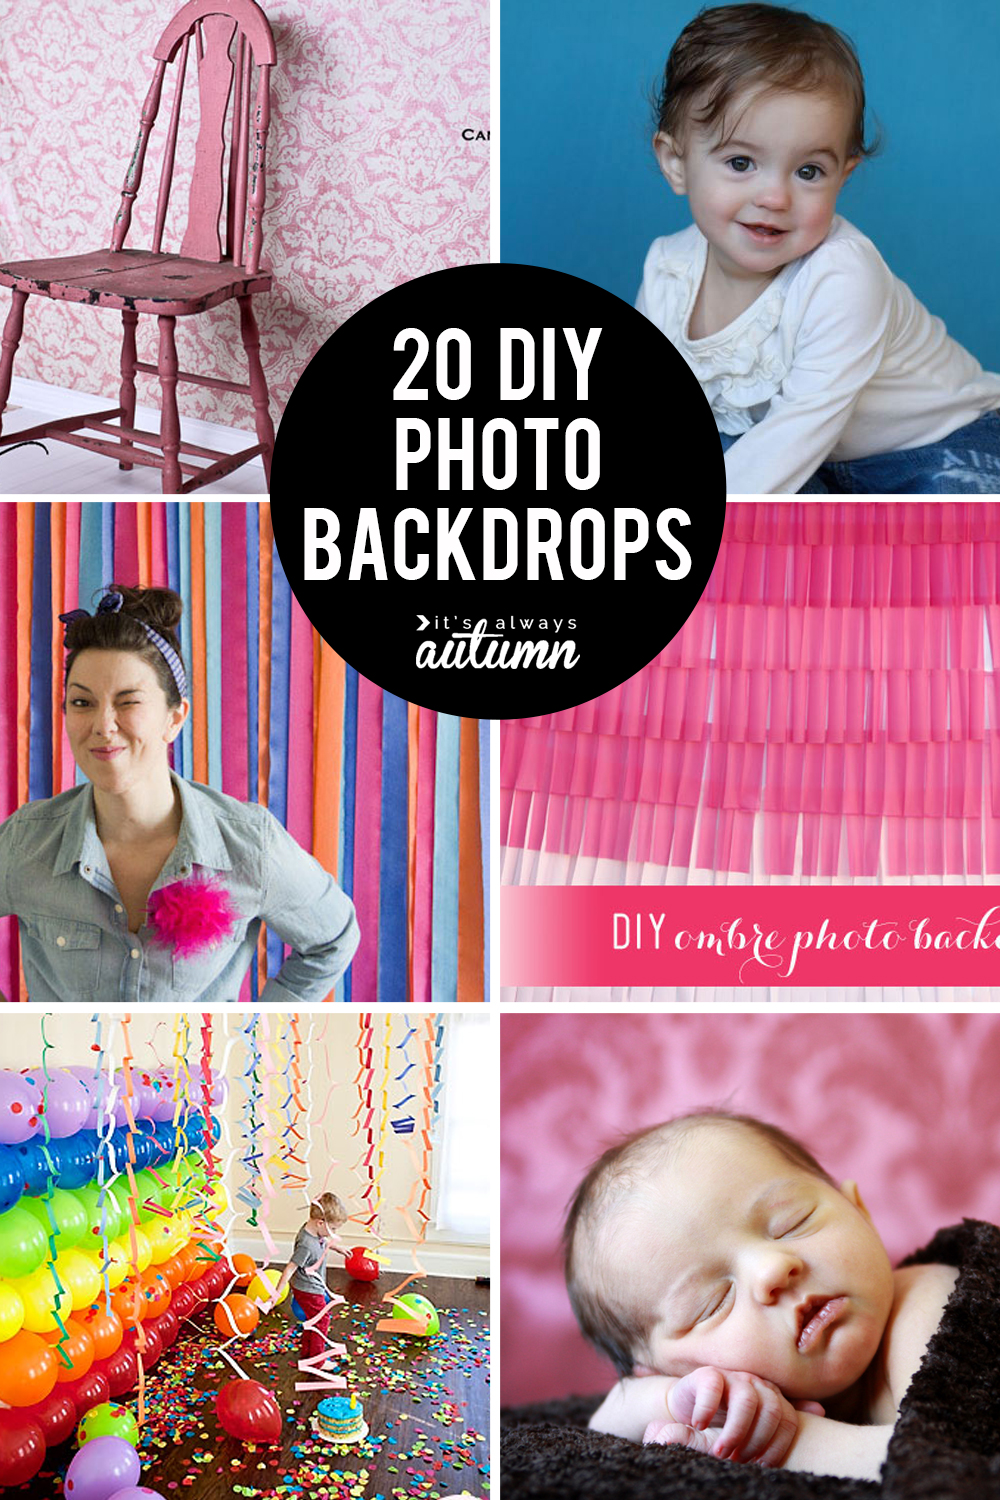 20 fabulous DIY photo backdrops.